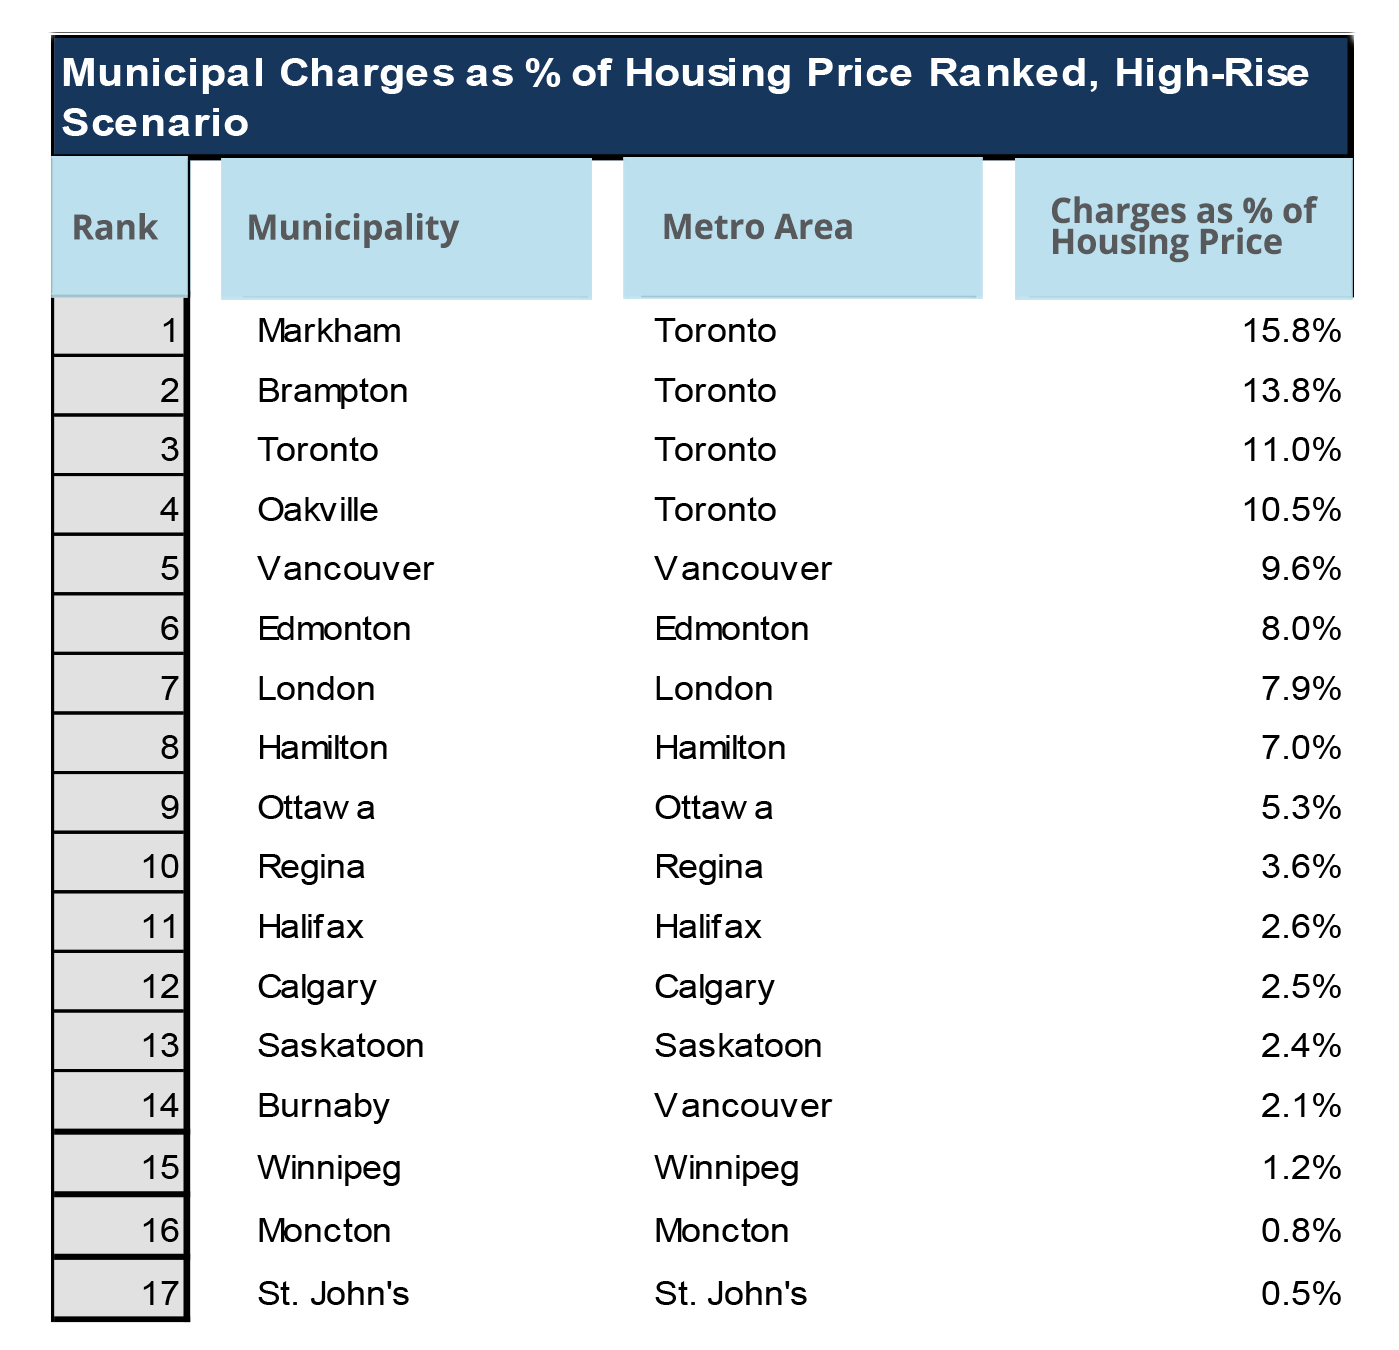 Municipal Charges as Percentage of House Price - Table